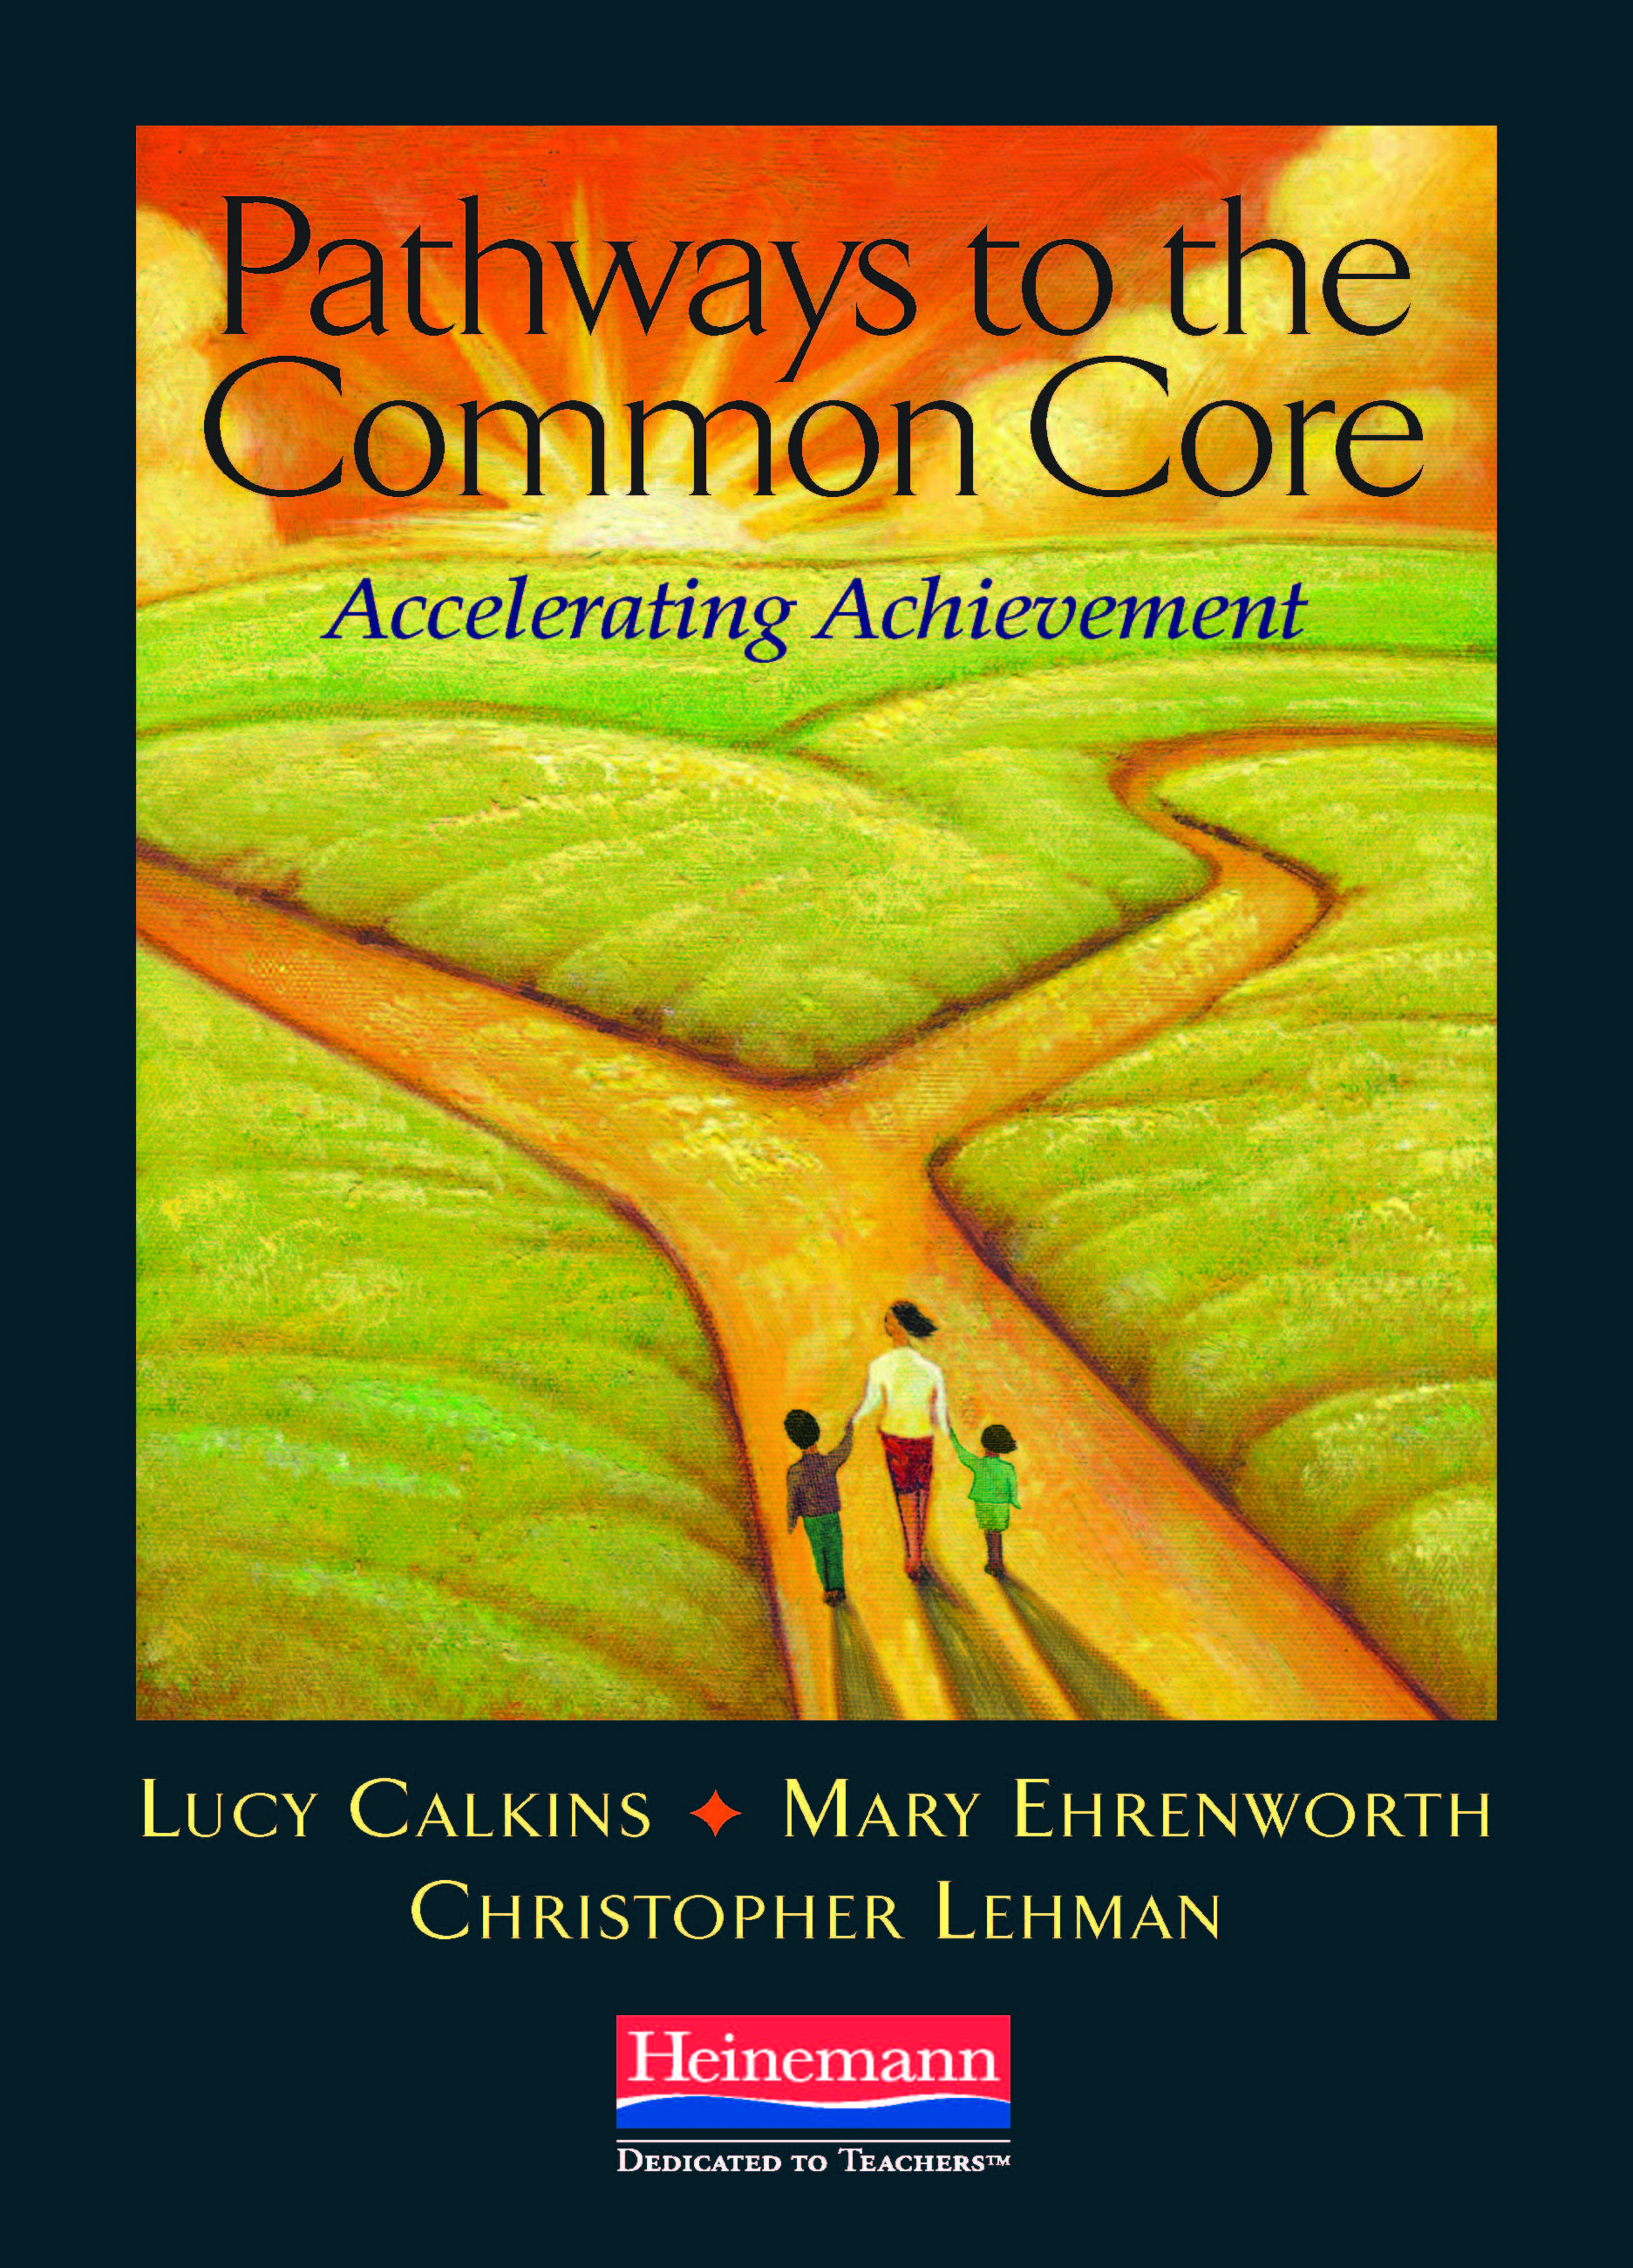 common core writing We have looked at the ccss for writing k-12 and will help schools create a program that begins building a firm foundation of writing from kindergarten on up, in order.